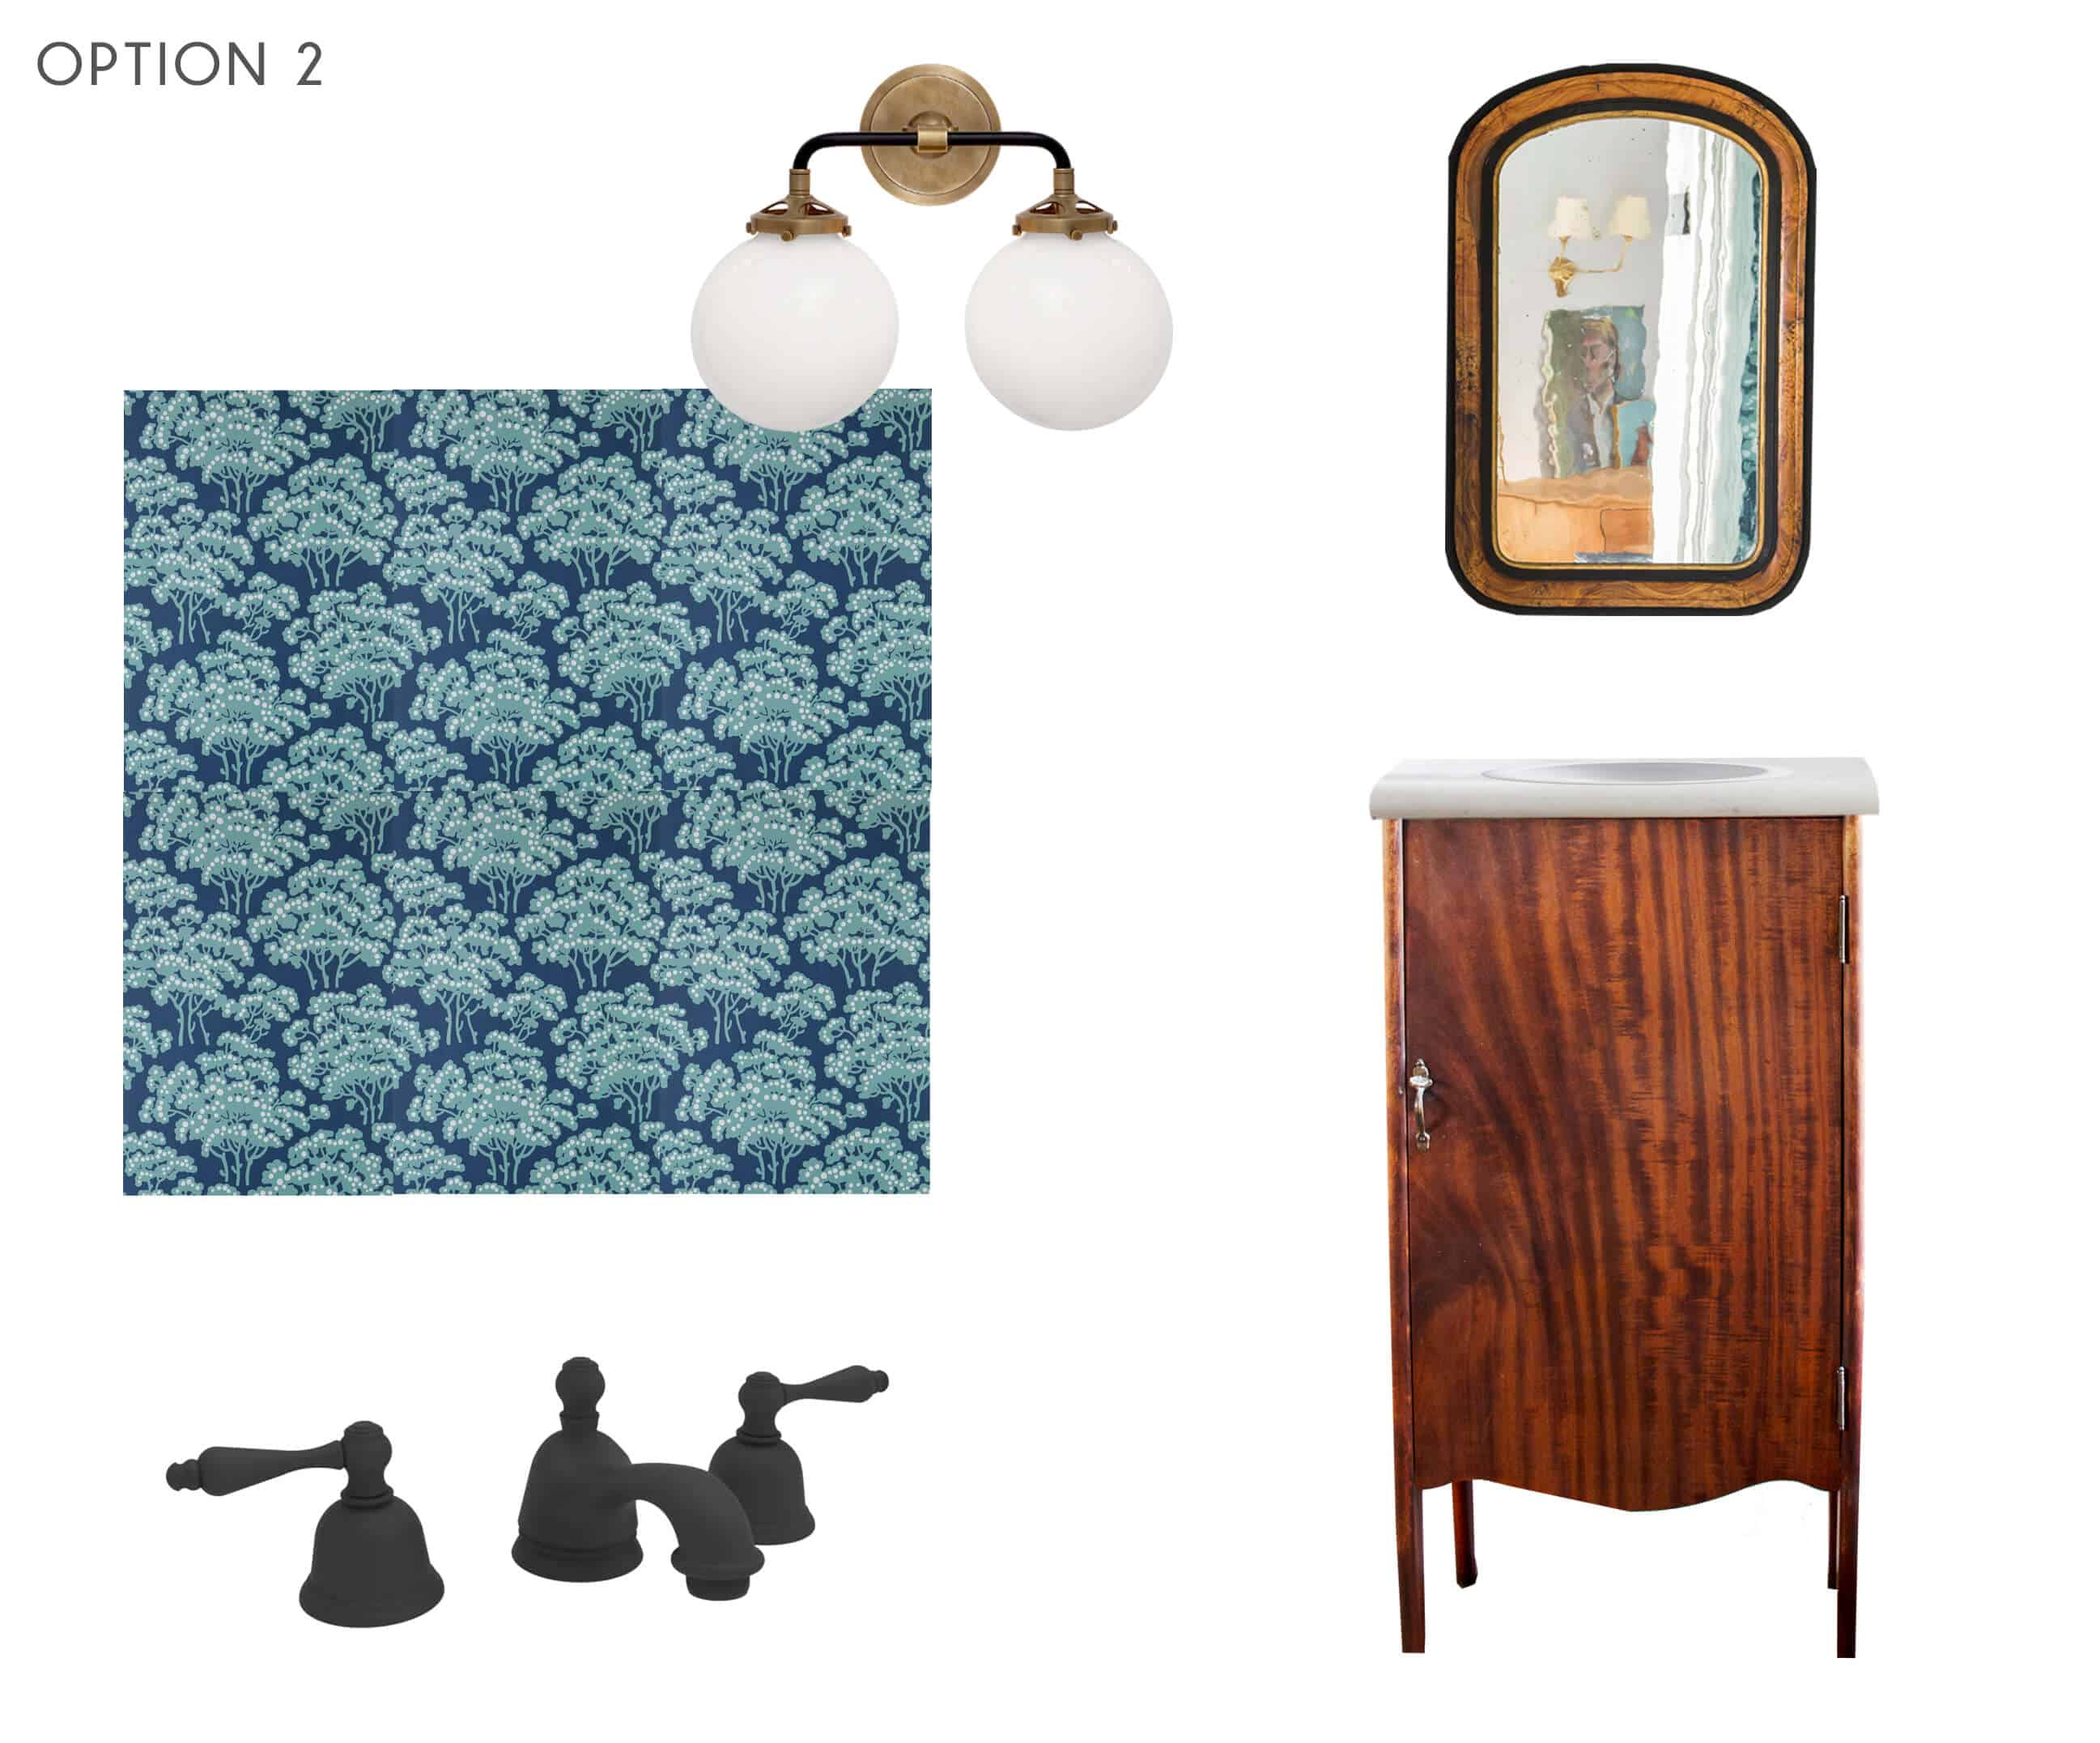 Emily Henderson_Ask the Audience_Powder Room_Vanity_Faucet_Combo_Option 2